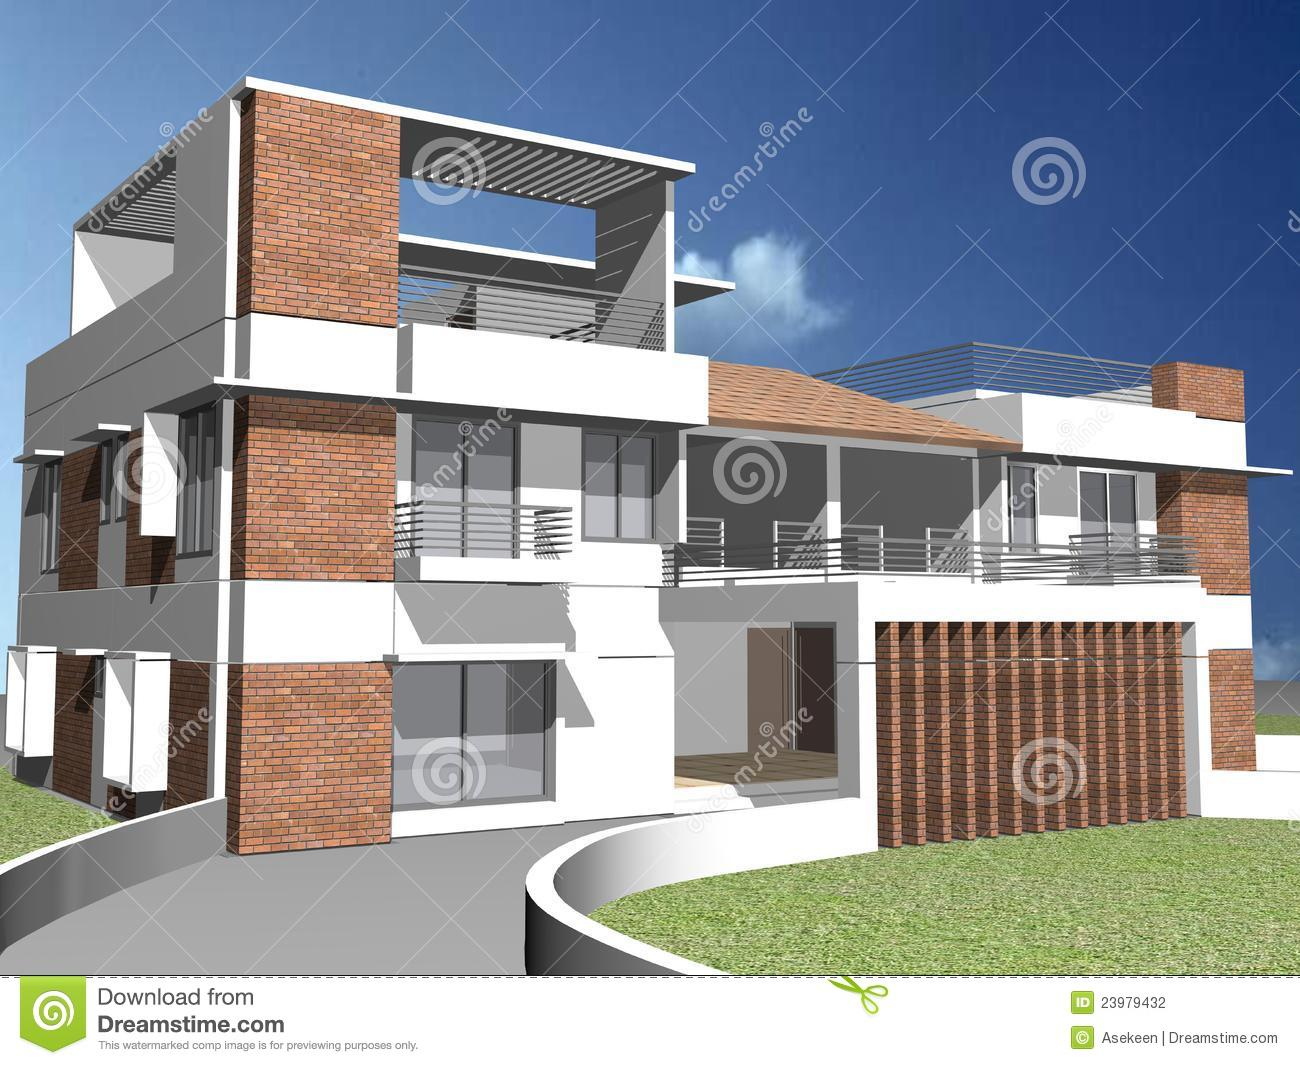 Maison 3d duplex photographie stock image 23979432 for Maison duplex plan